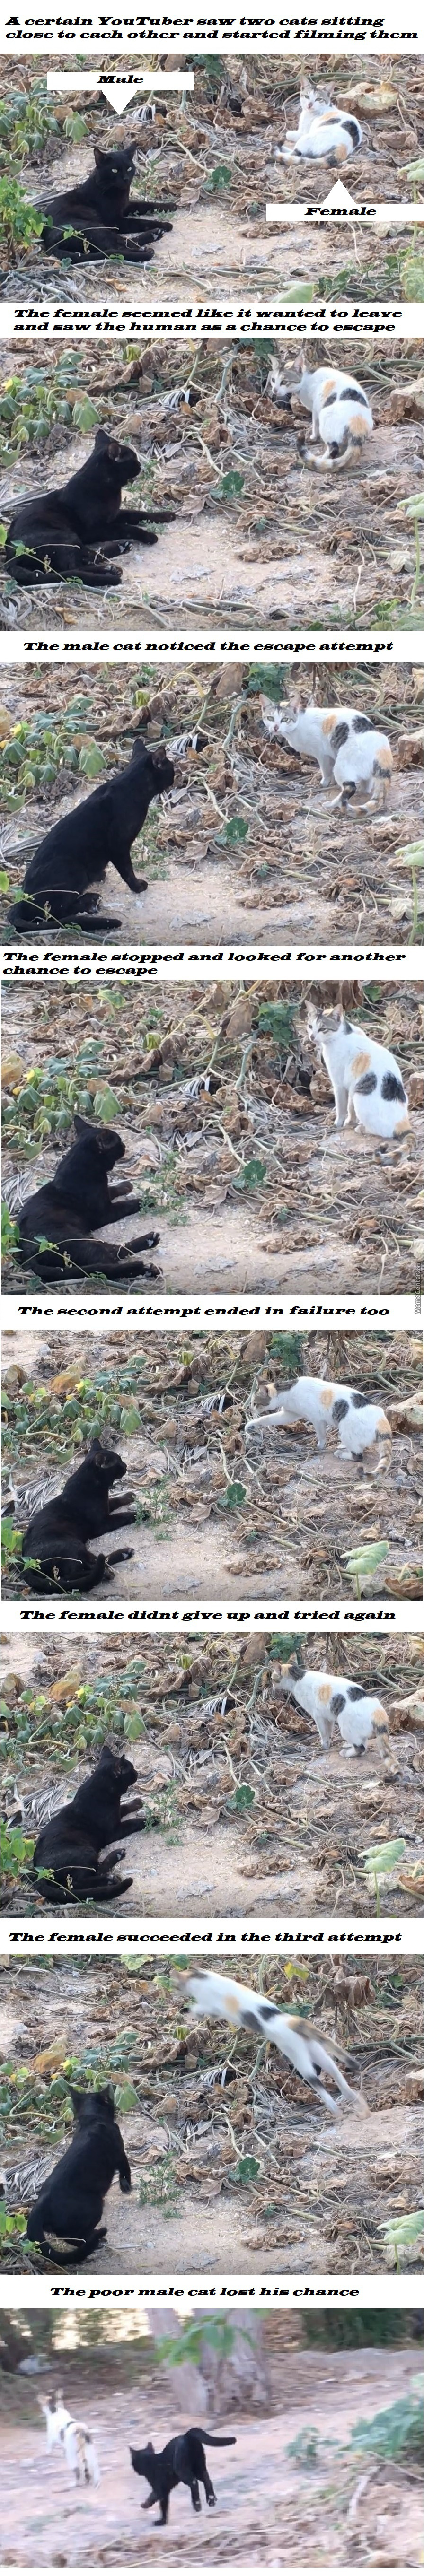 Did The Female Cat Use The Human To Escape From The Male Cat?